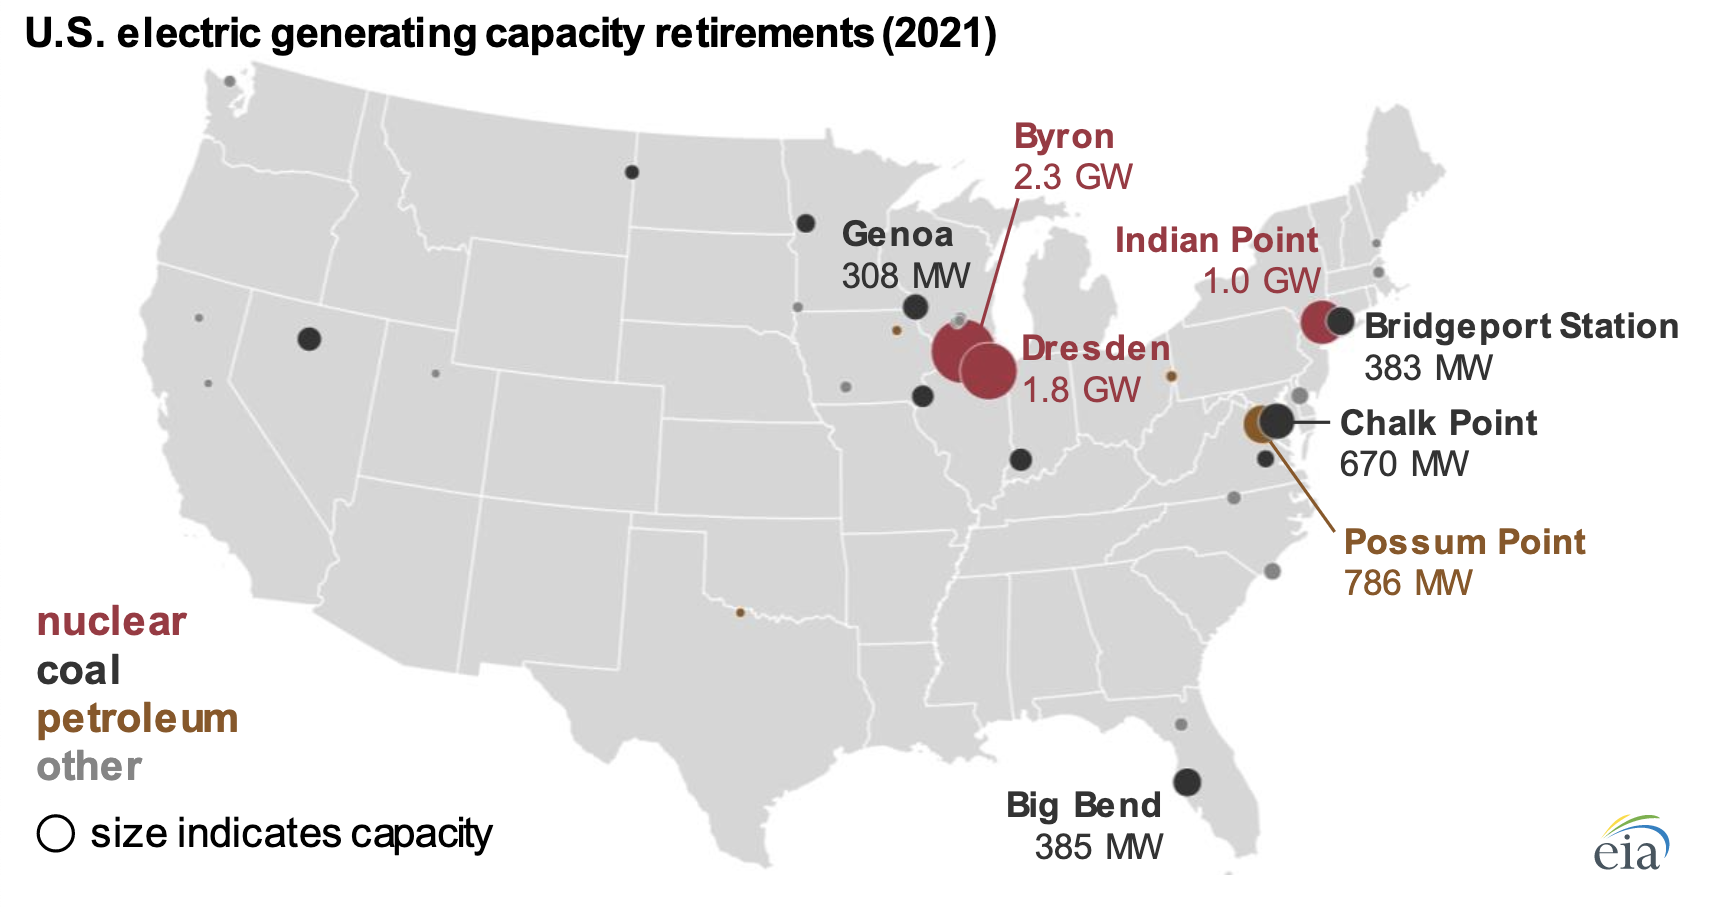 Nuclear & Coal Will Account for Majority of U.S. Generating Capacity Retirements in 2021